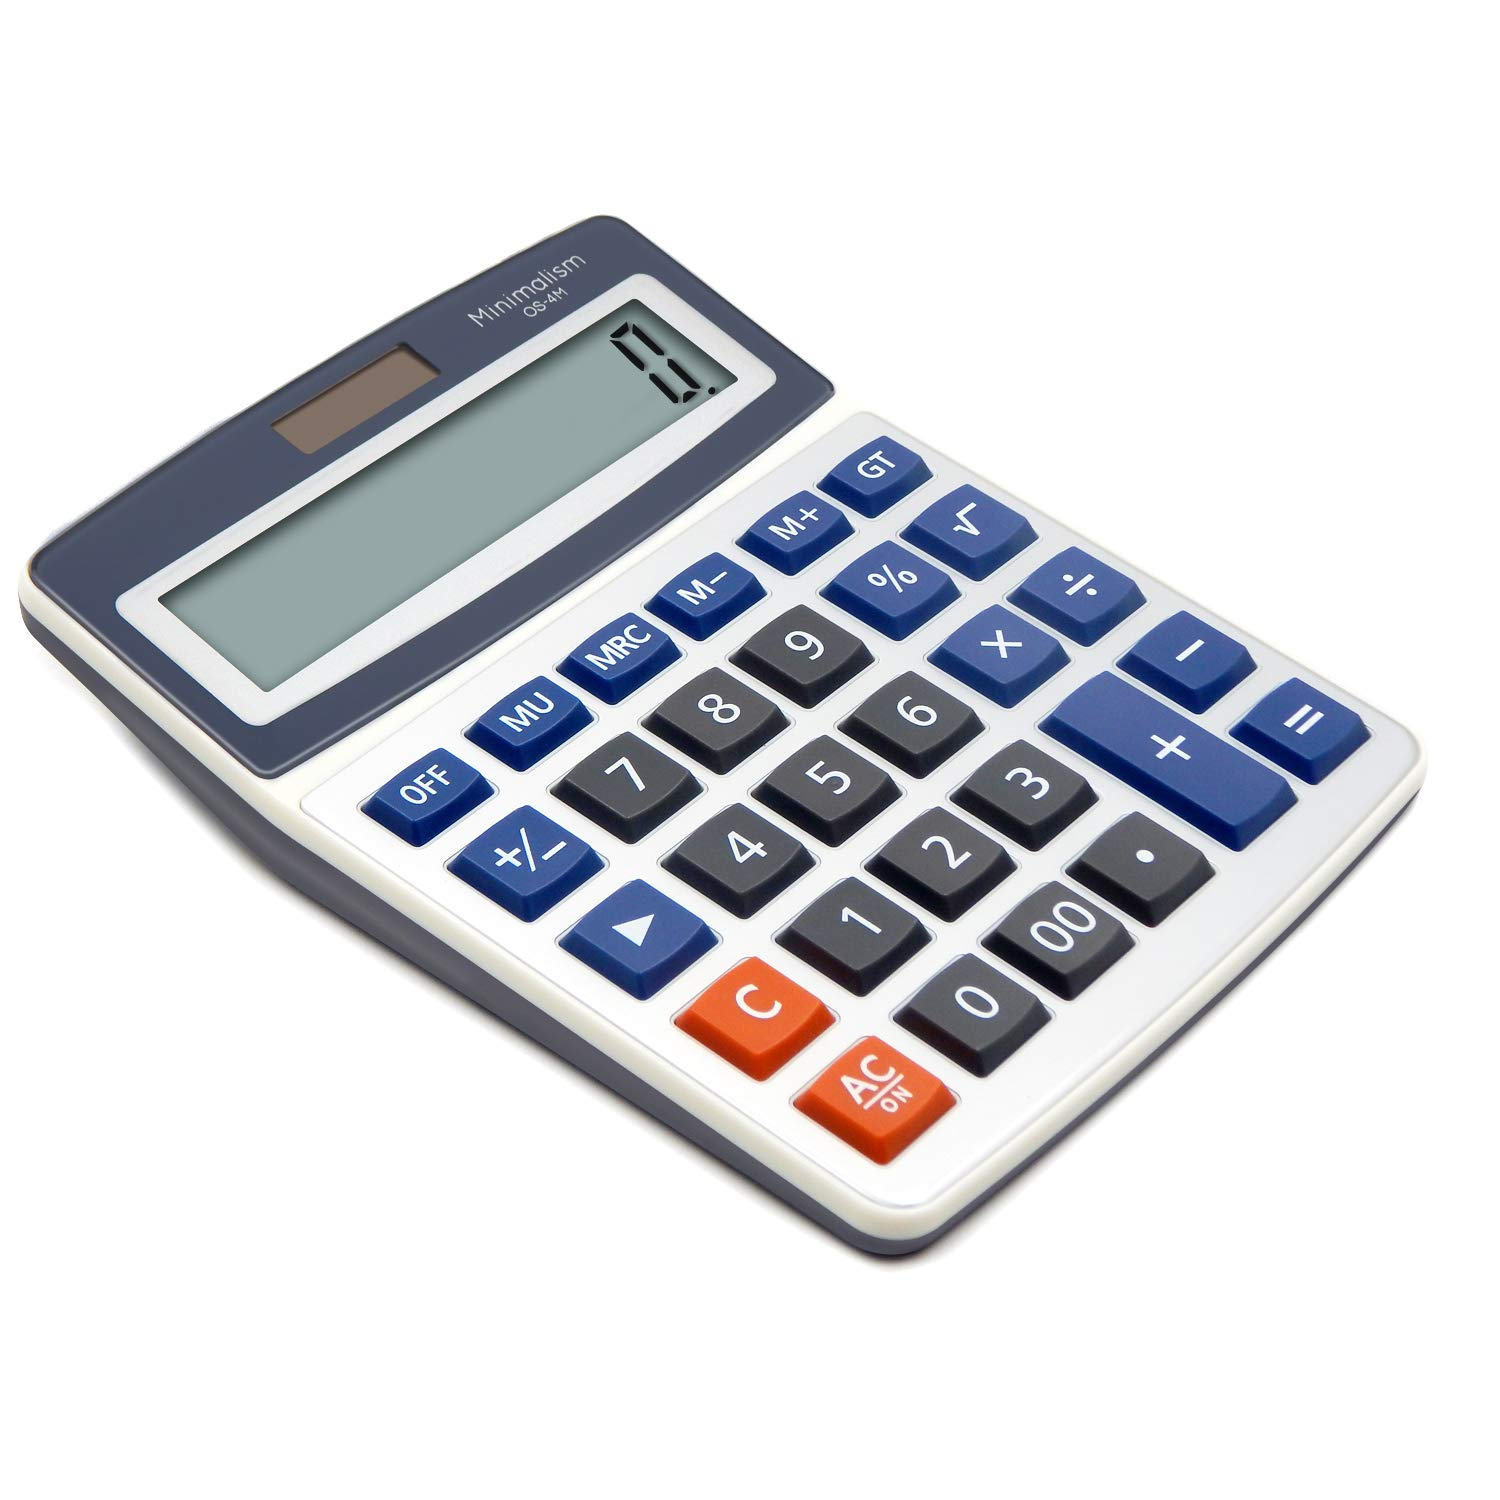 OFFIDIX Basic Office Calculators,Solar and Battery Dual Power Electronic Calculator Portable Large LCD Display Calculator Big Numbers Desktop Calculator (Big Size) by OFFIDIX